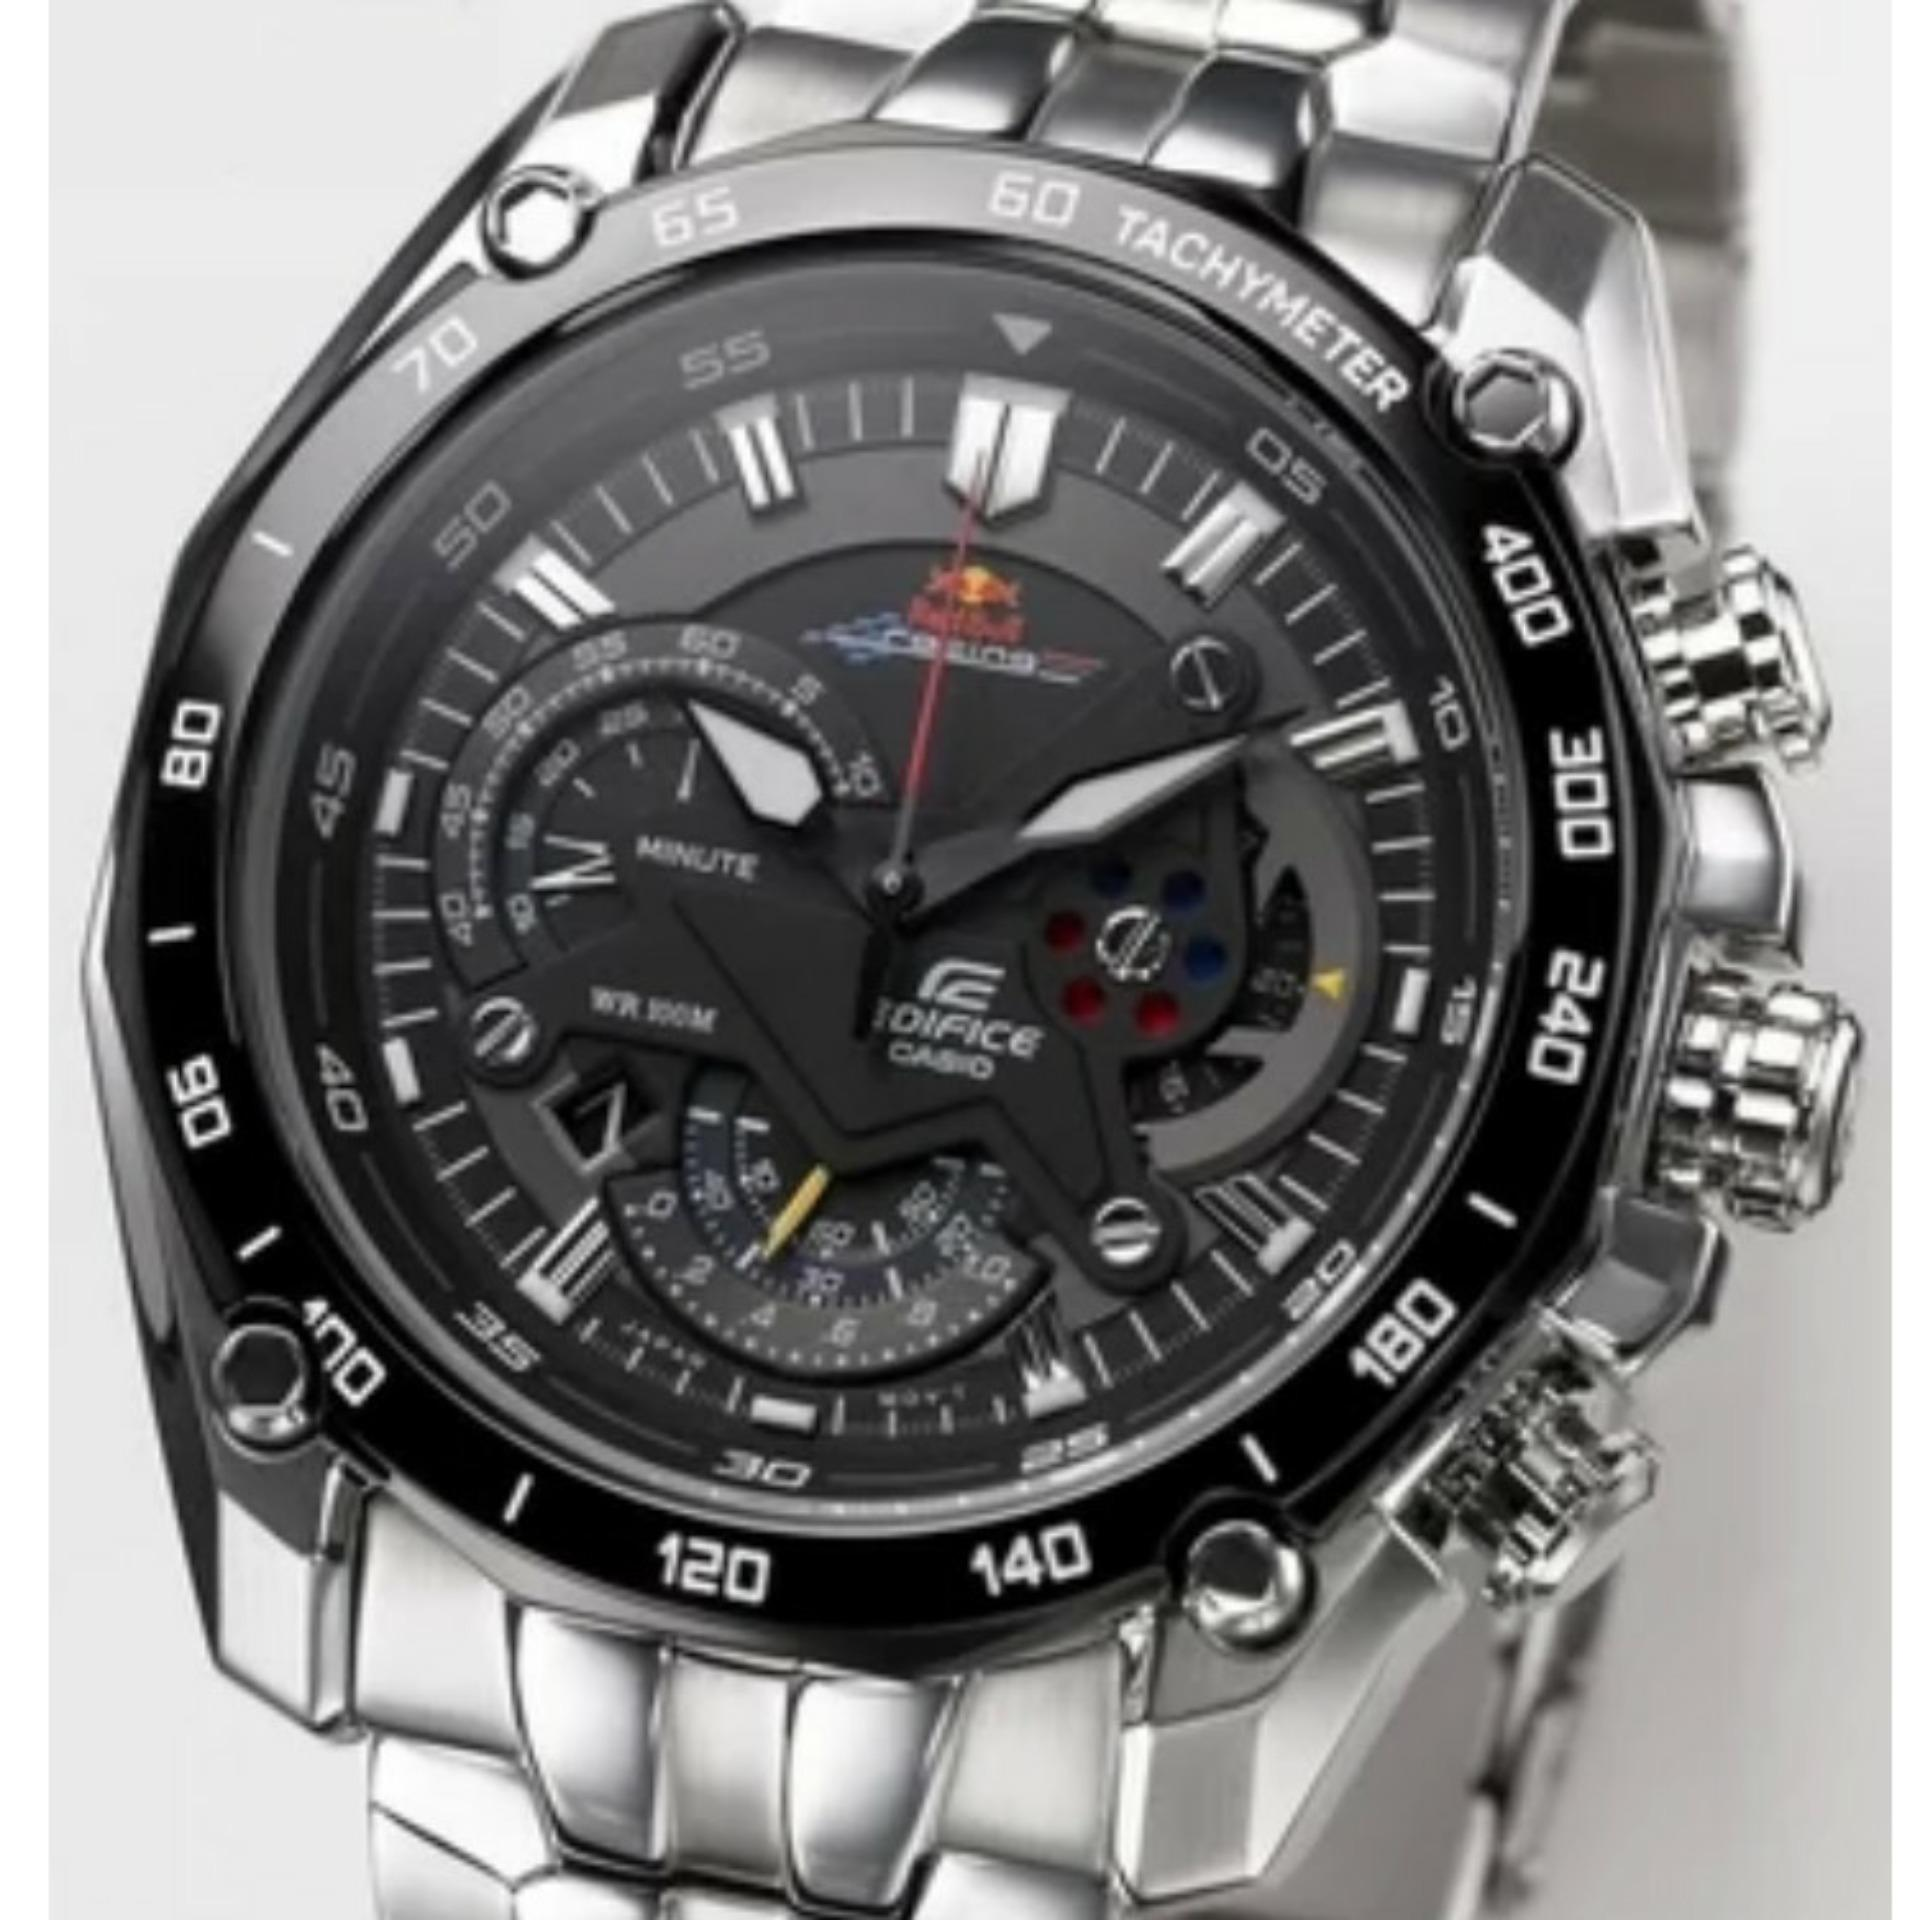 Casio Edifice Efr 550limited Edition Jam Tangan Pria Silver Daftar 503d 7a2vdf Stainless Steel White Ef 550bk Redbull Limited